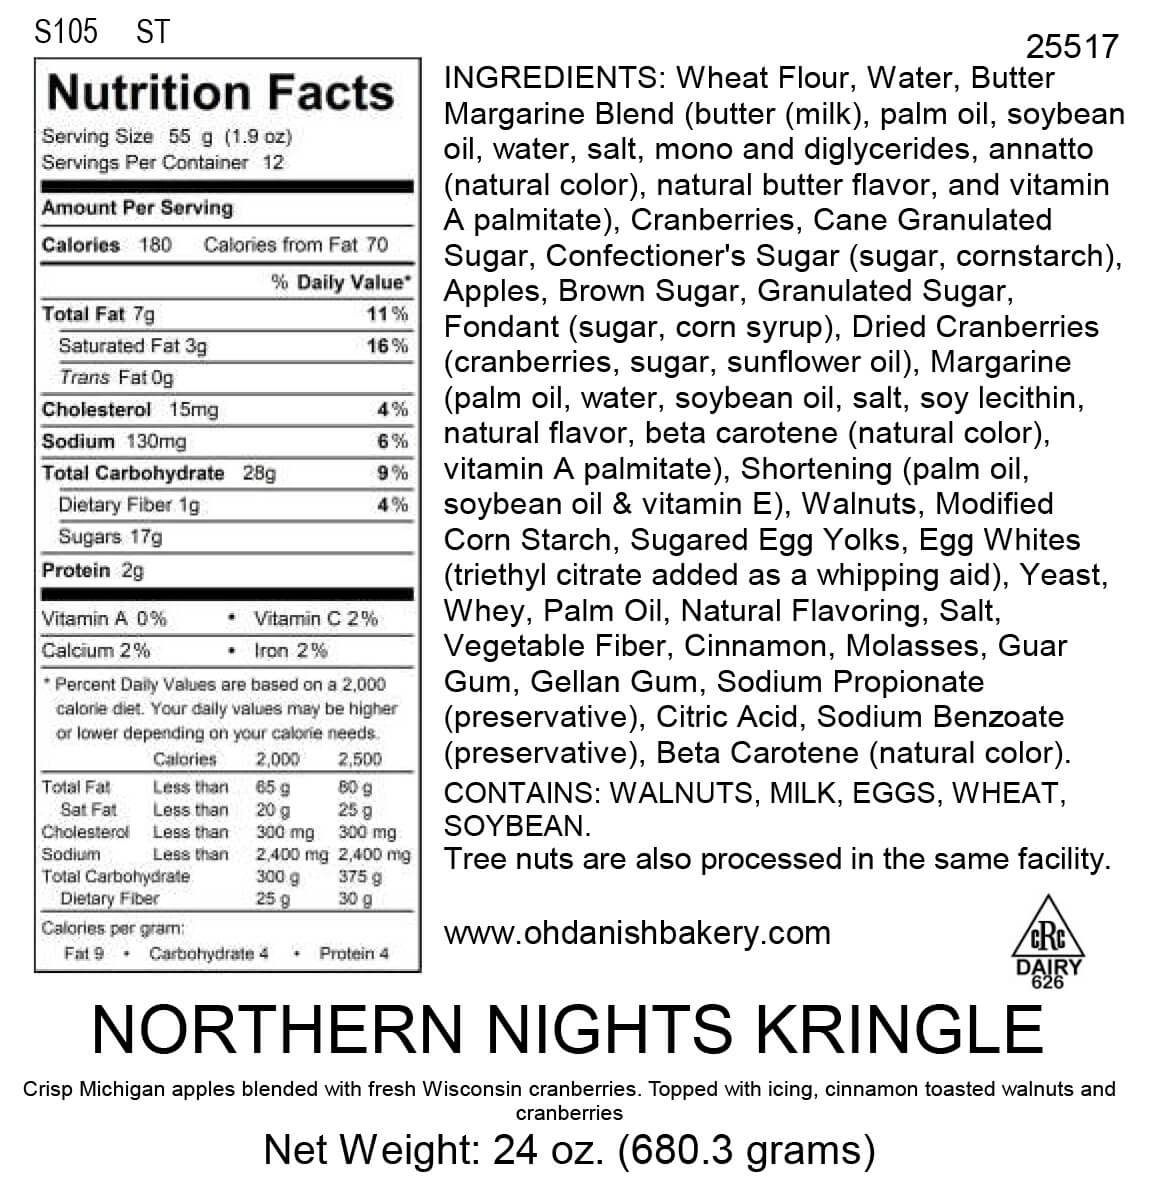 Nutritional Label for Northern Nights Kringle